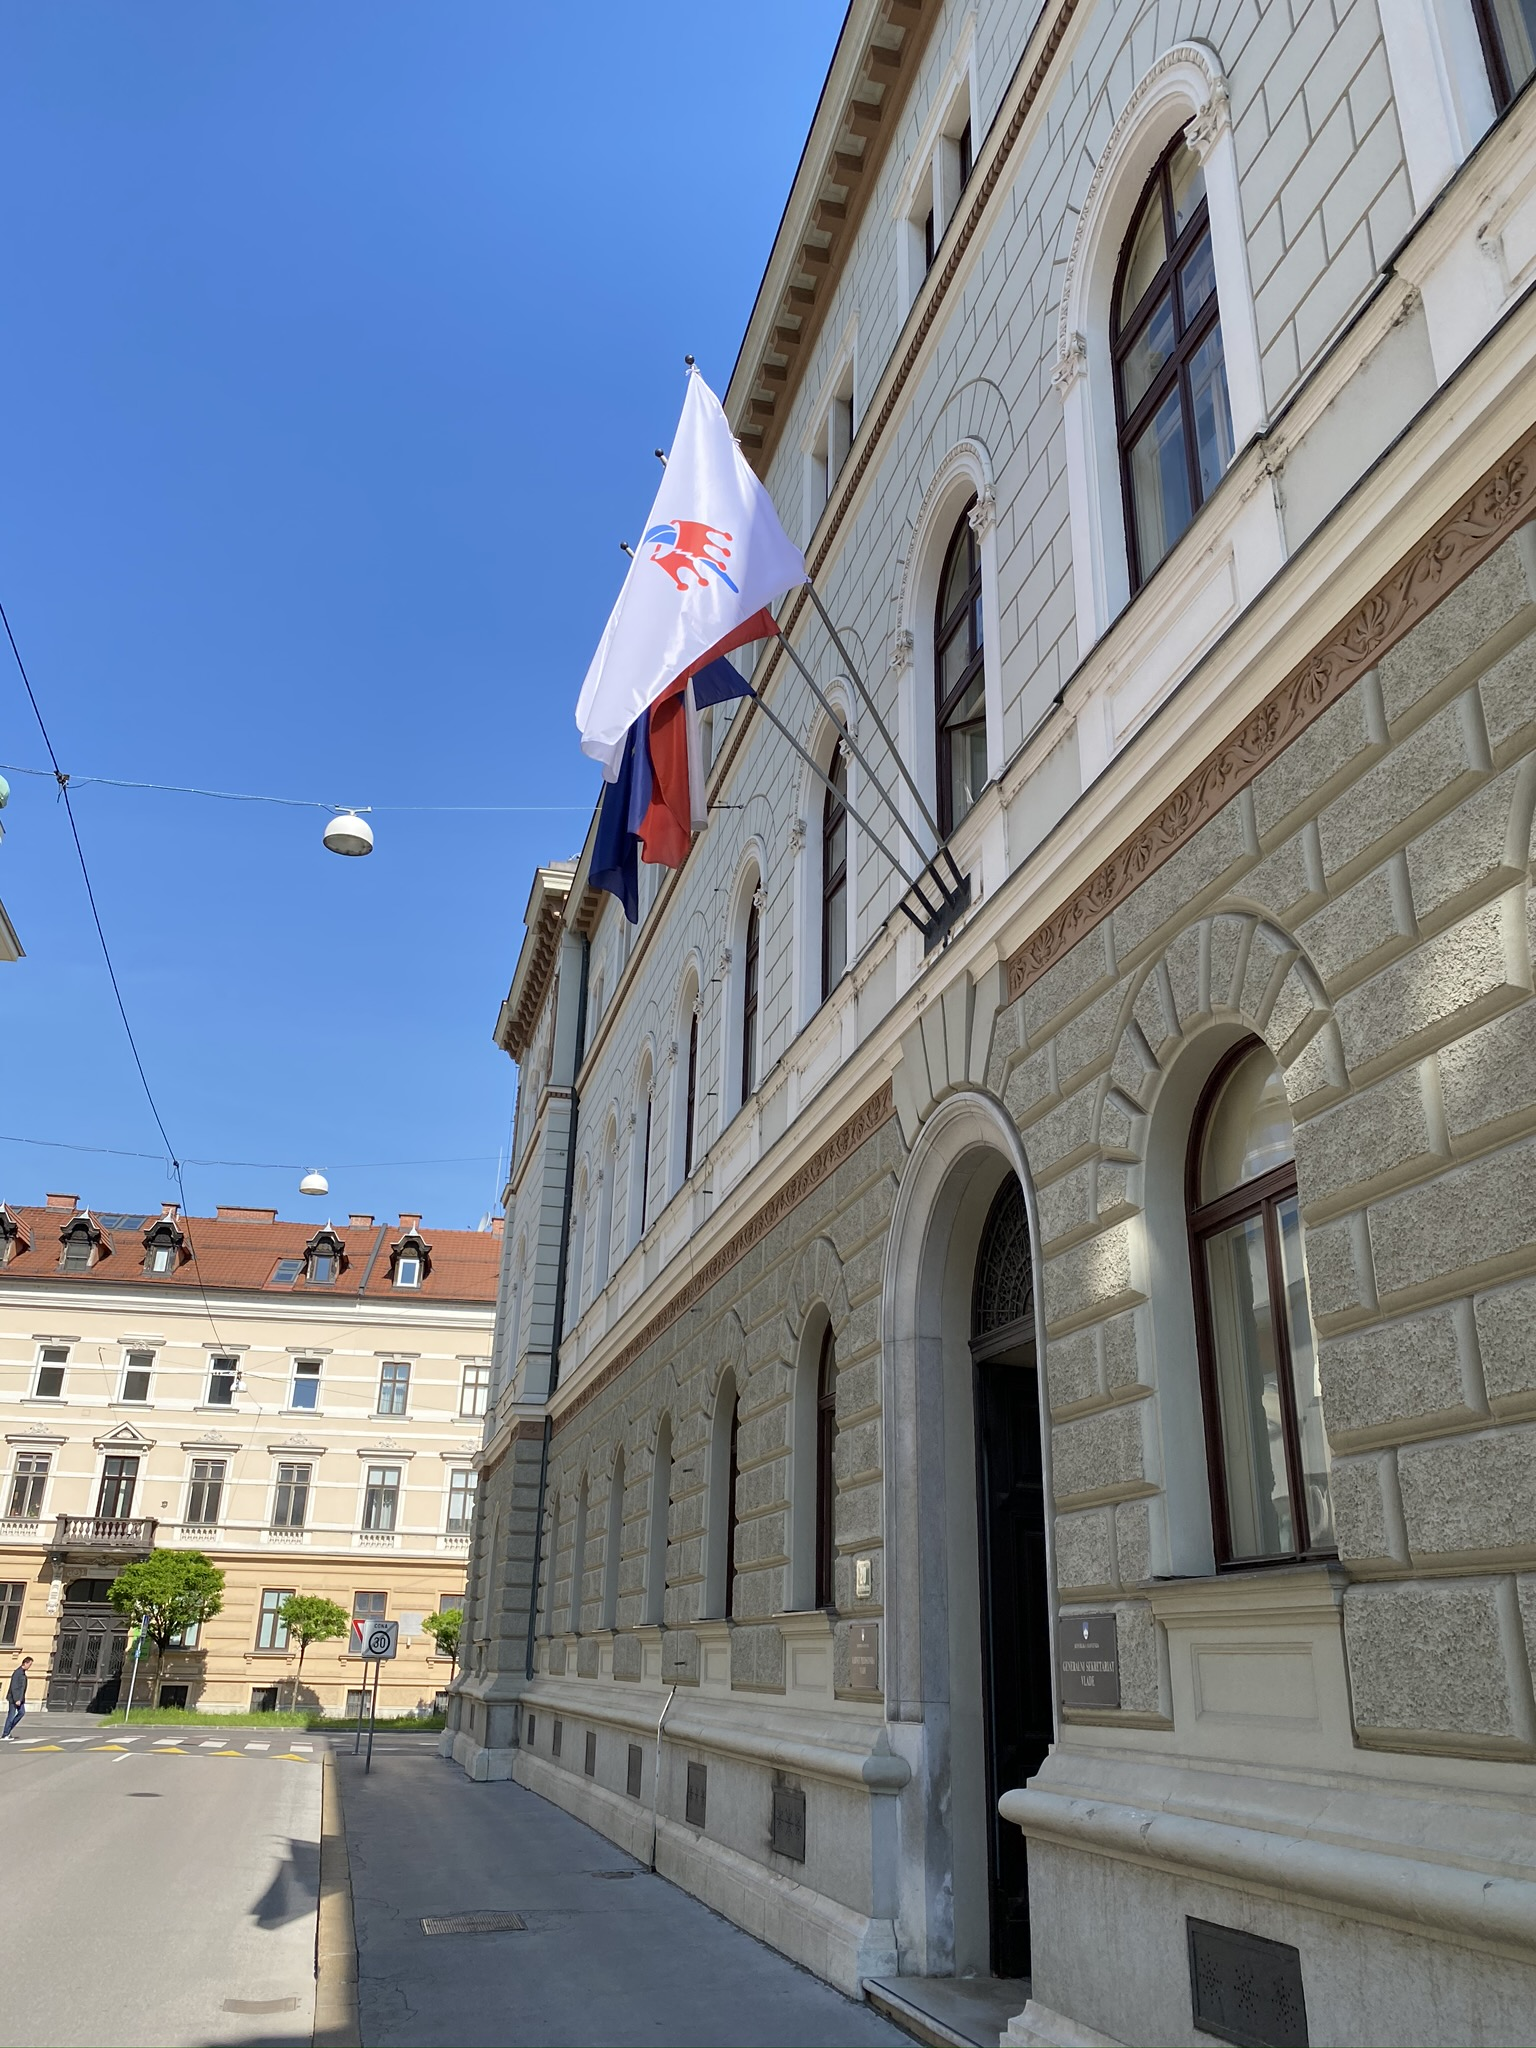 Government Palace in Ljubljana. Photo: Aleksander Hribovšek, 22 May 2020.